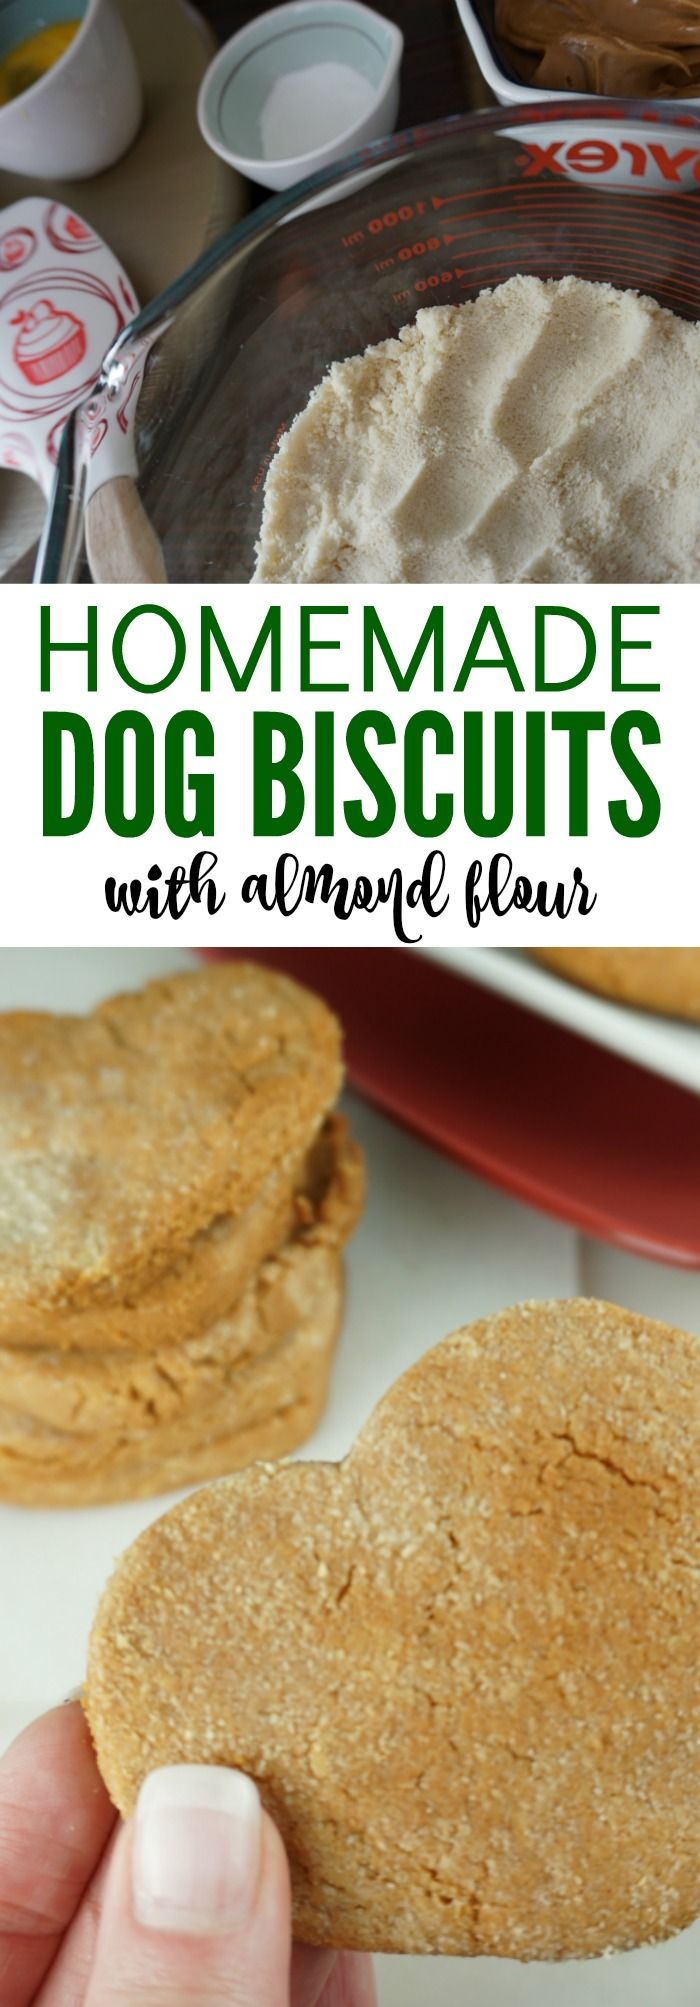 Homemade Dog Treats with Almond Flour! Healthy treats for your pups that they will love! DIY And Easy to make at home with only 5 Simple Ingredients! #diydogtreats #dogtreats #easypetrecipes